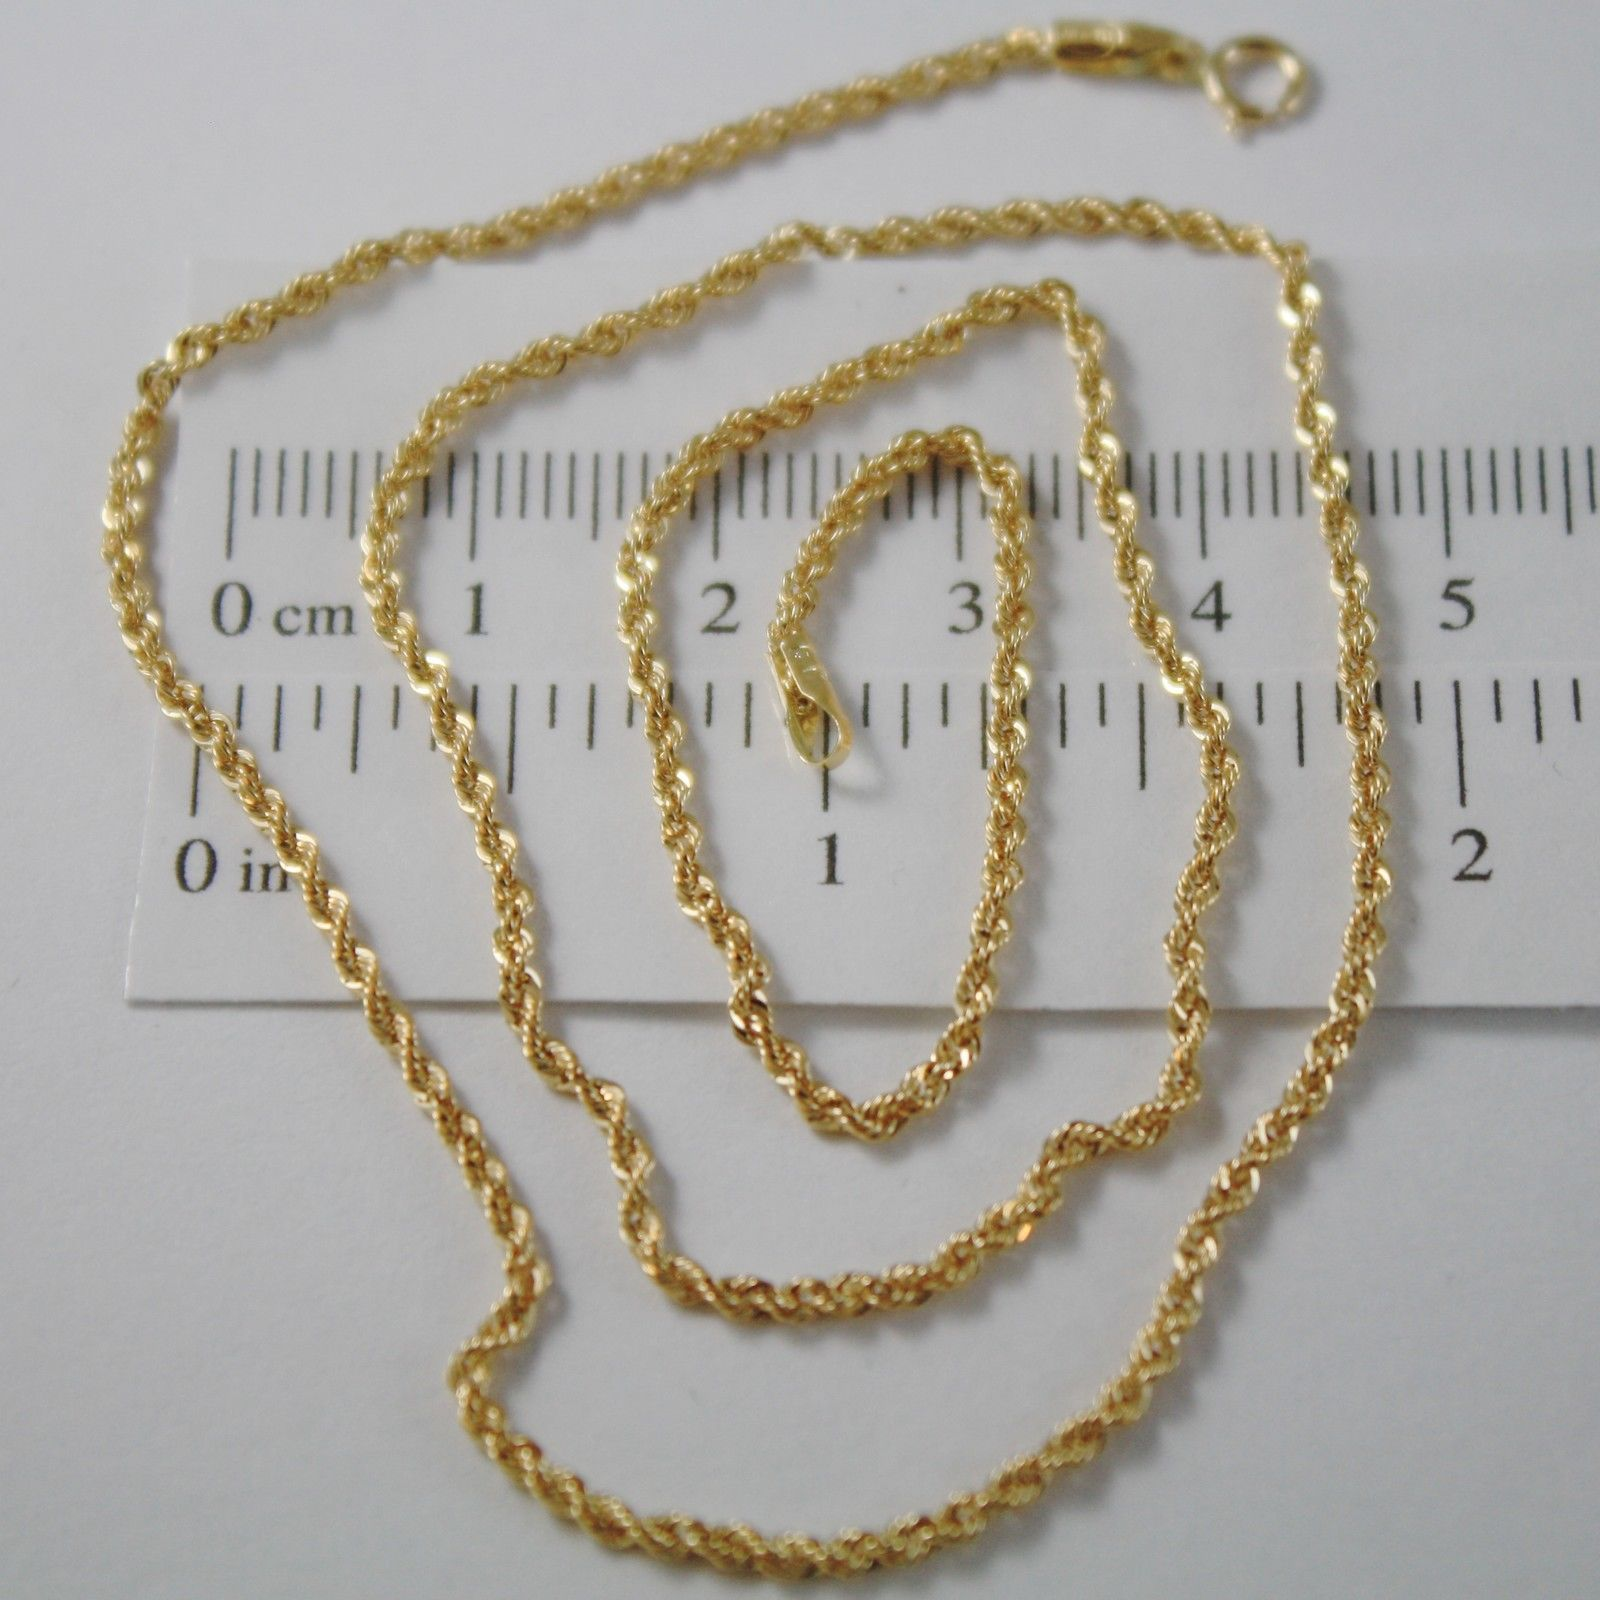 CADENA EN ORO AMARILLO 18K, CUERDA 2 MM, COLLAR, 45 CM, MADE IN ITALY, ITALIA